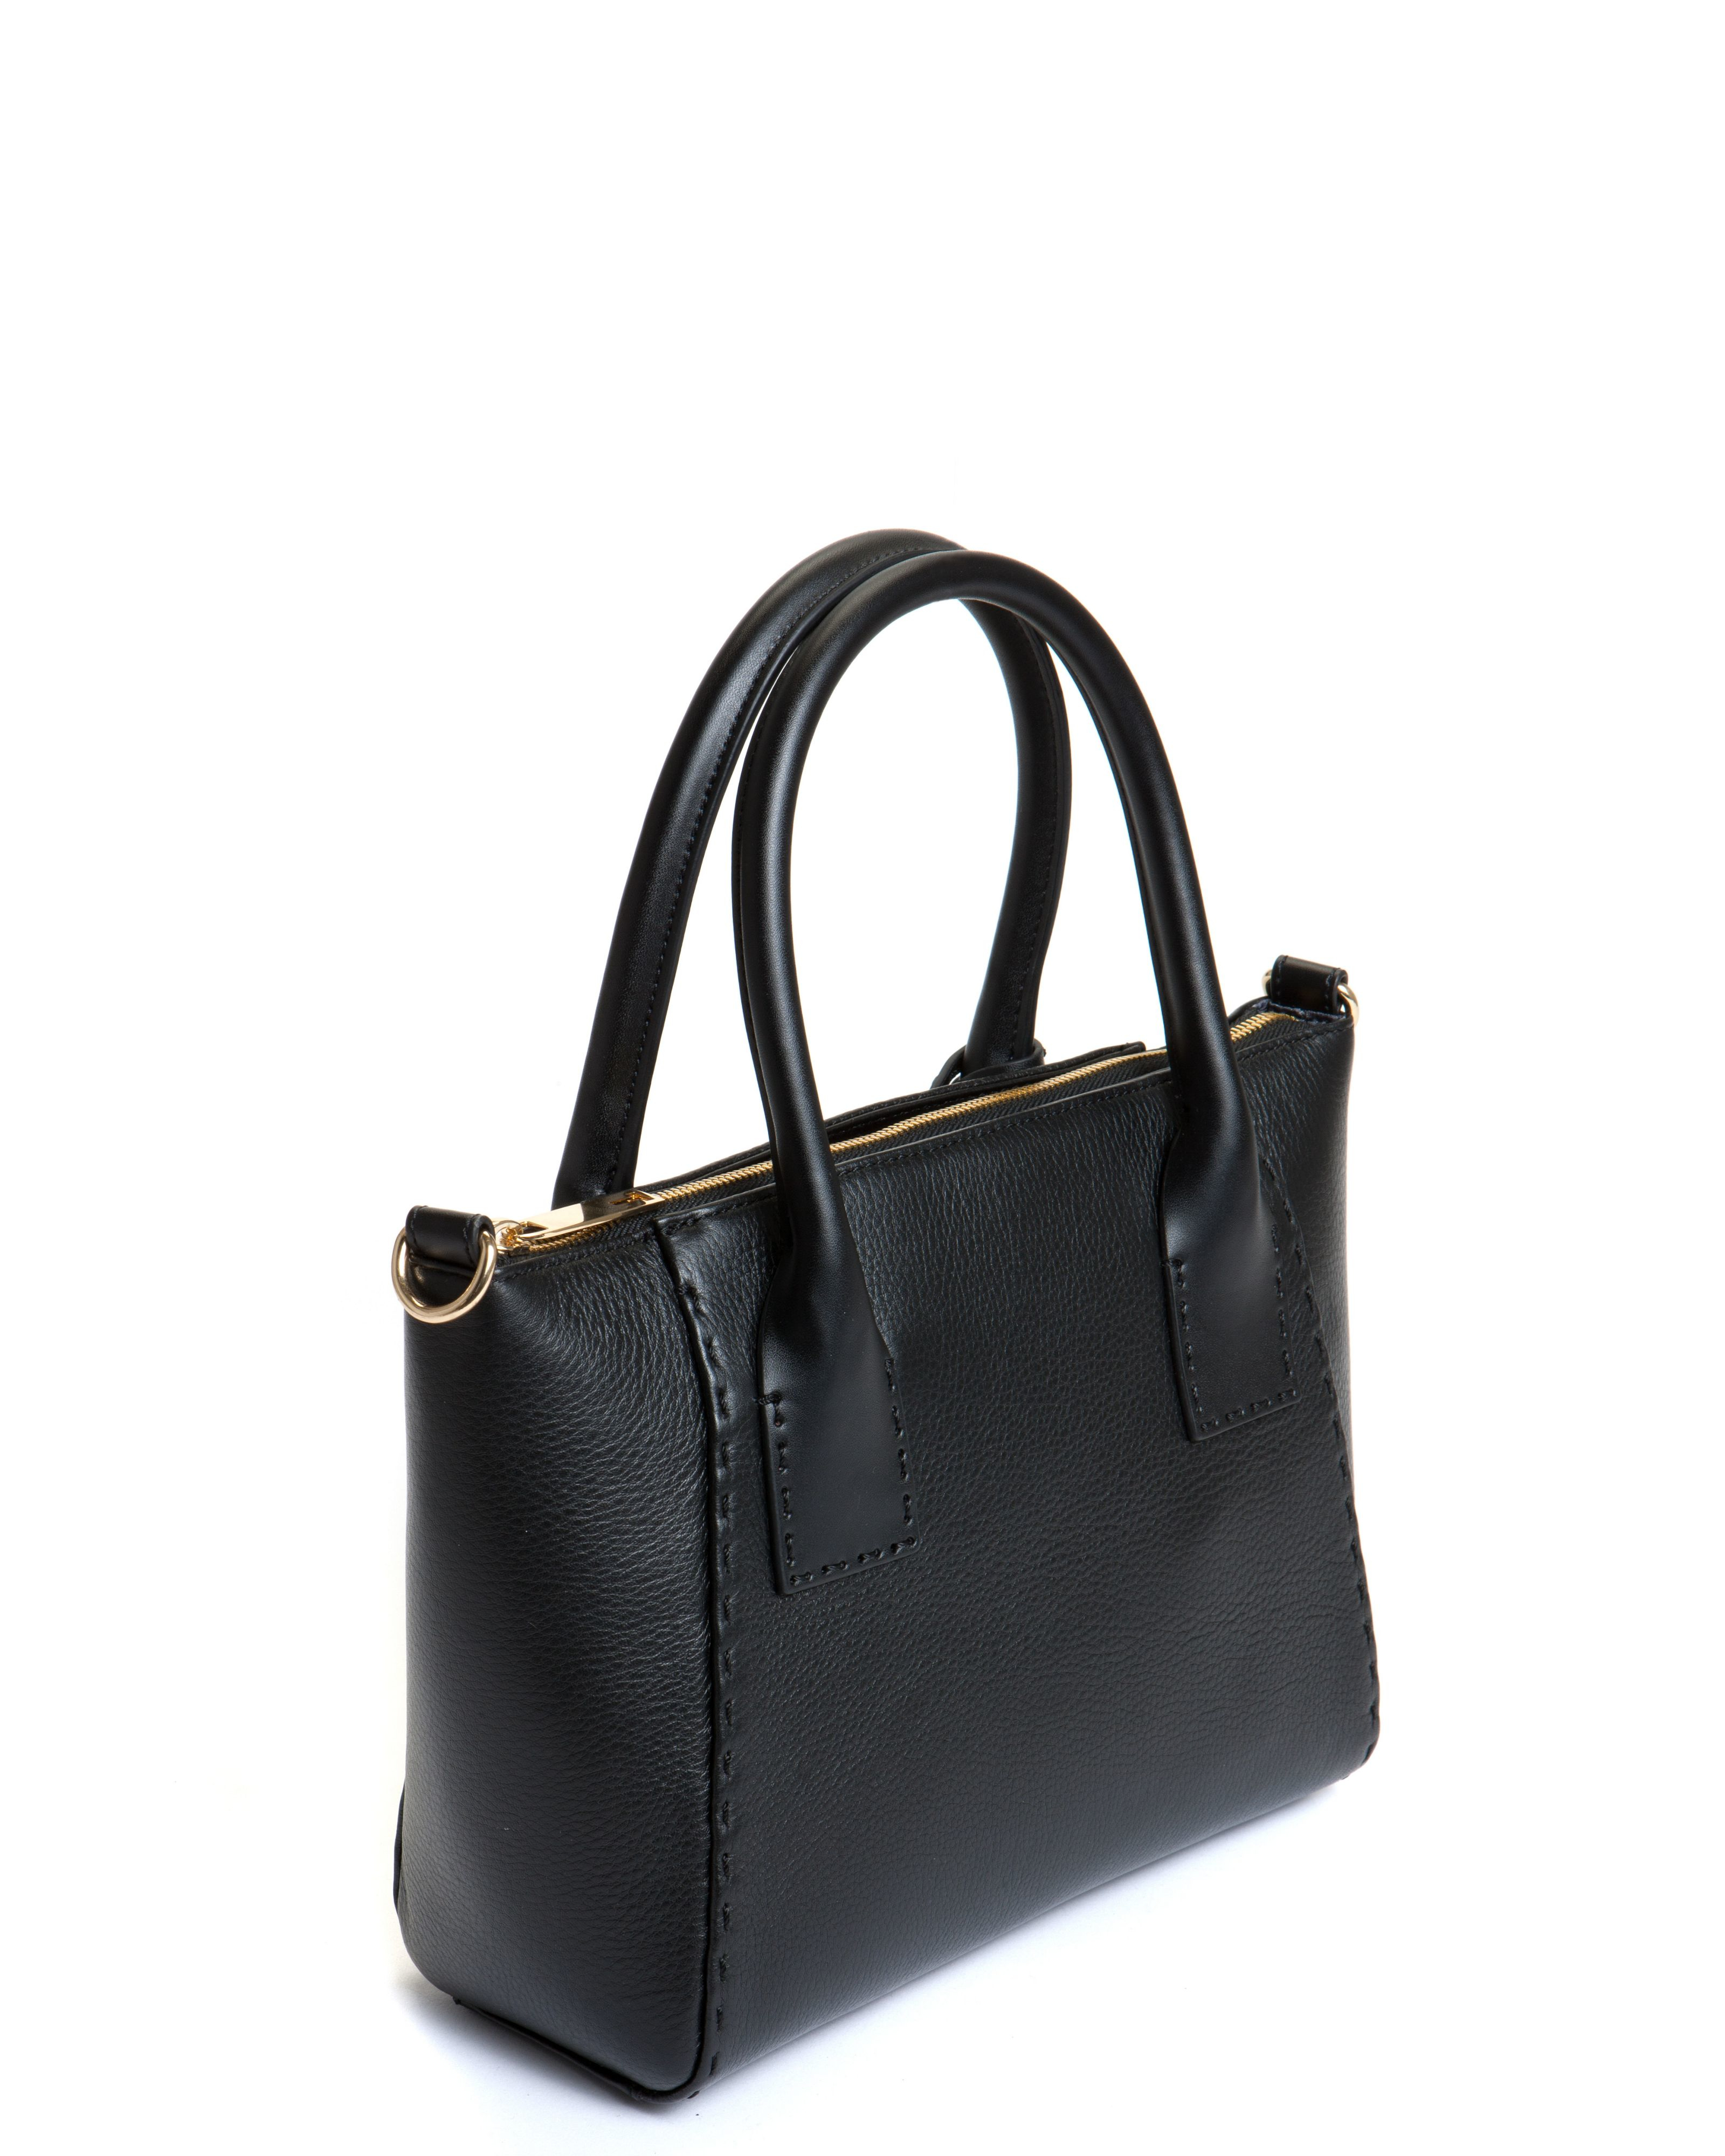 Ted baker Lauren Small Leather Tote Bag in Black | Lyst